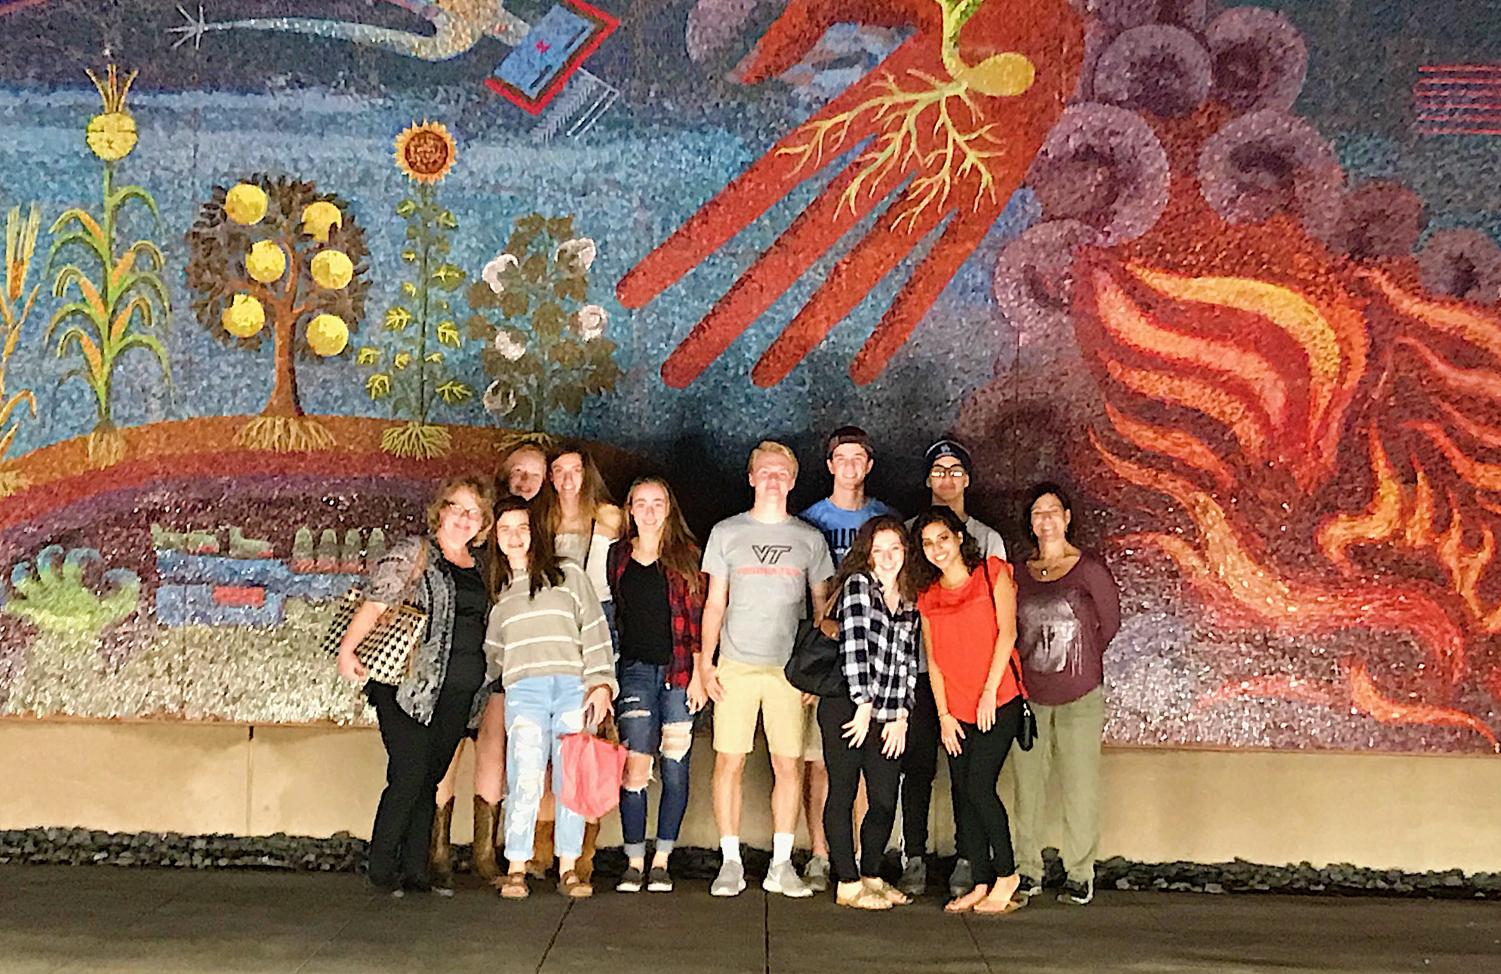 Journalism students and chaperons on the convention trip, tour the city of Dallas including the art district.